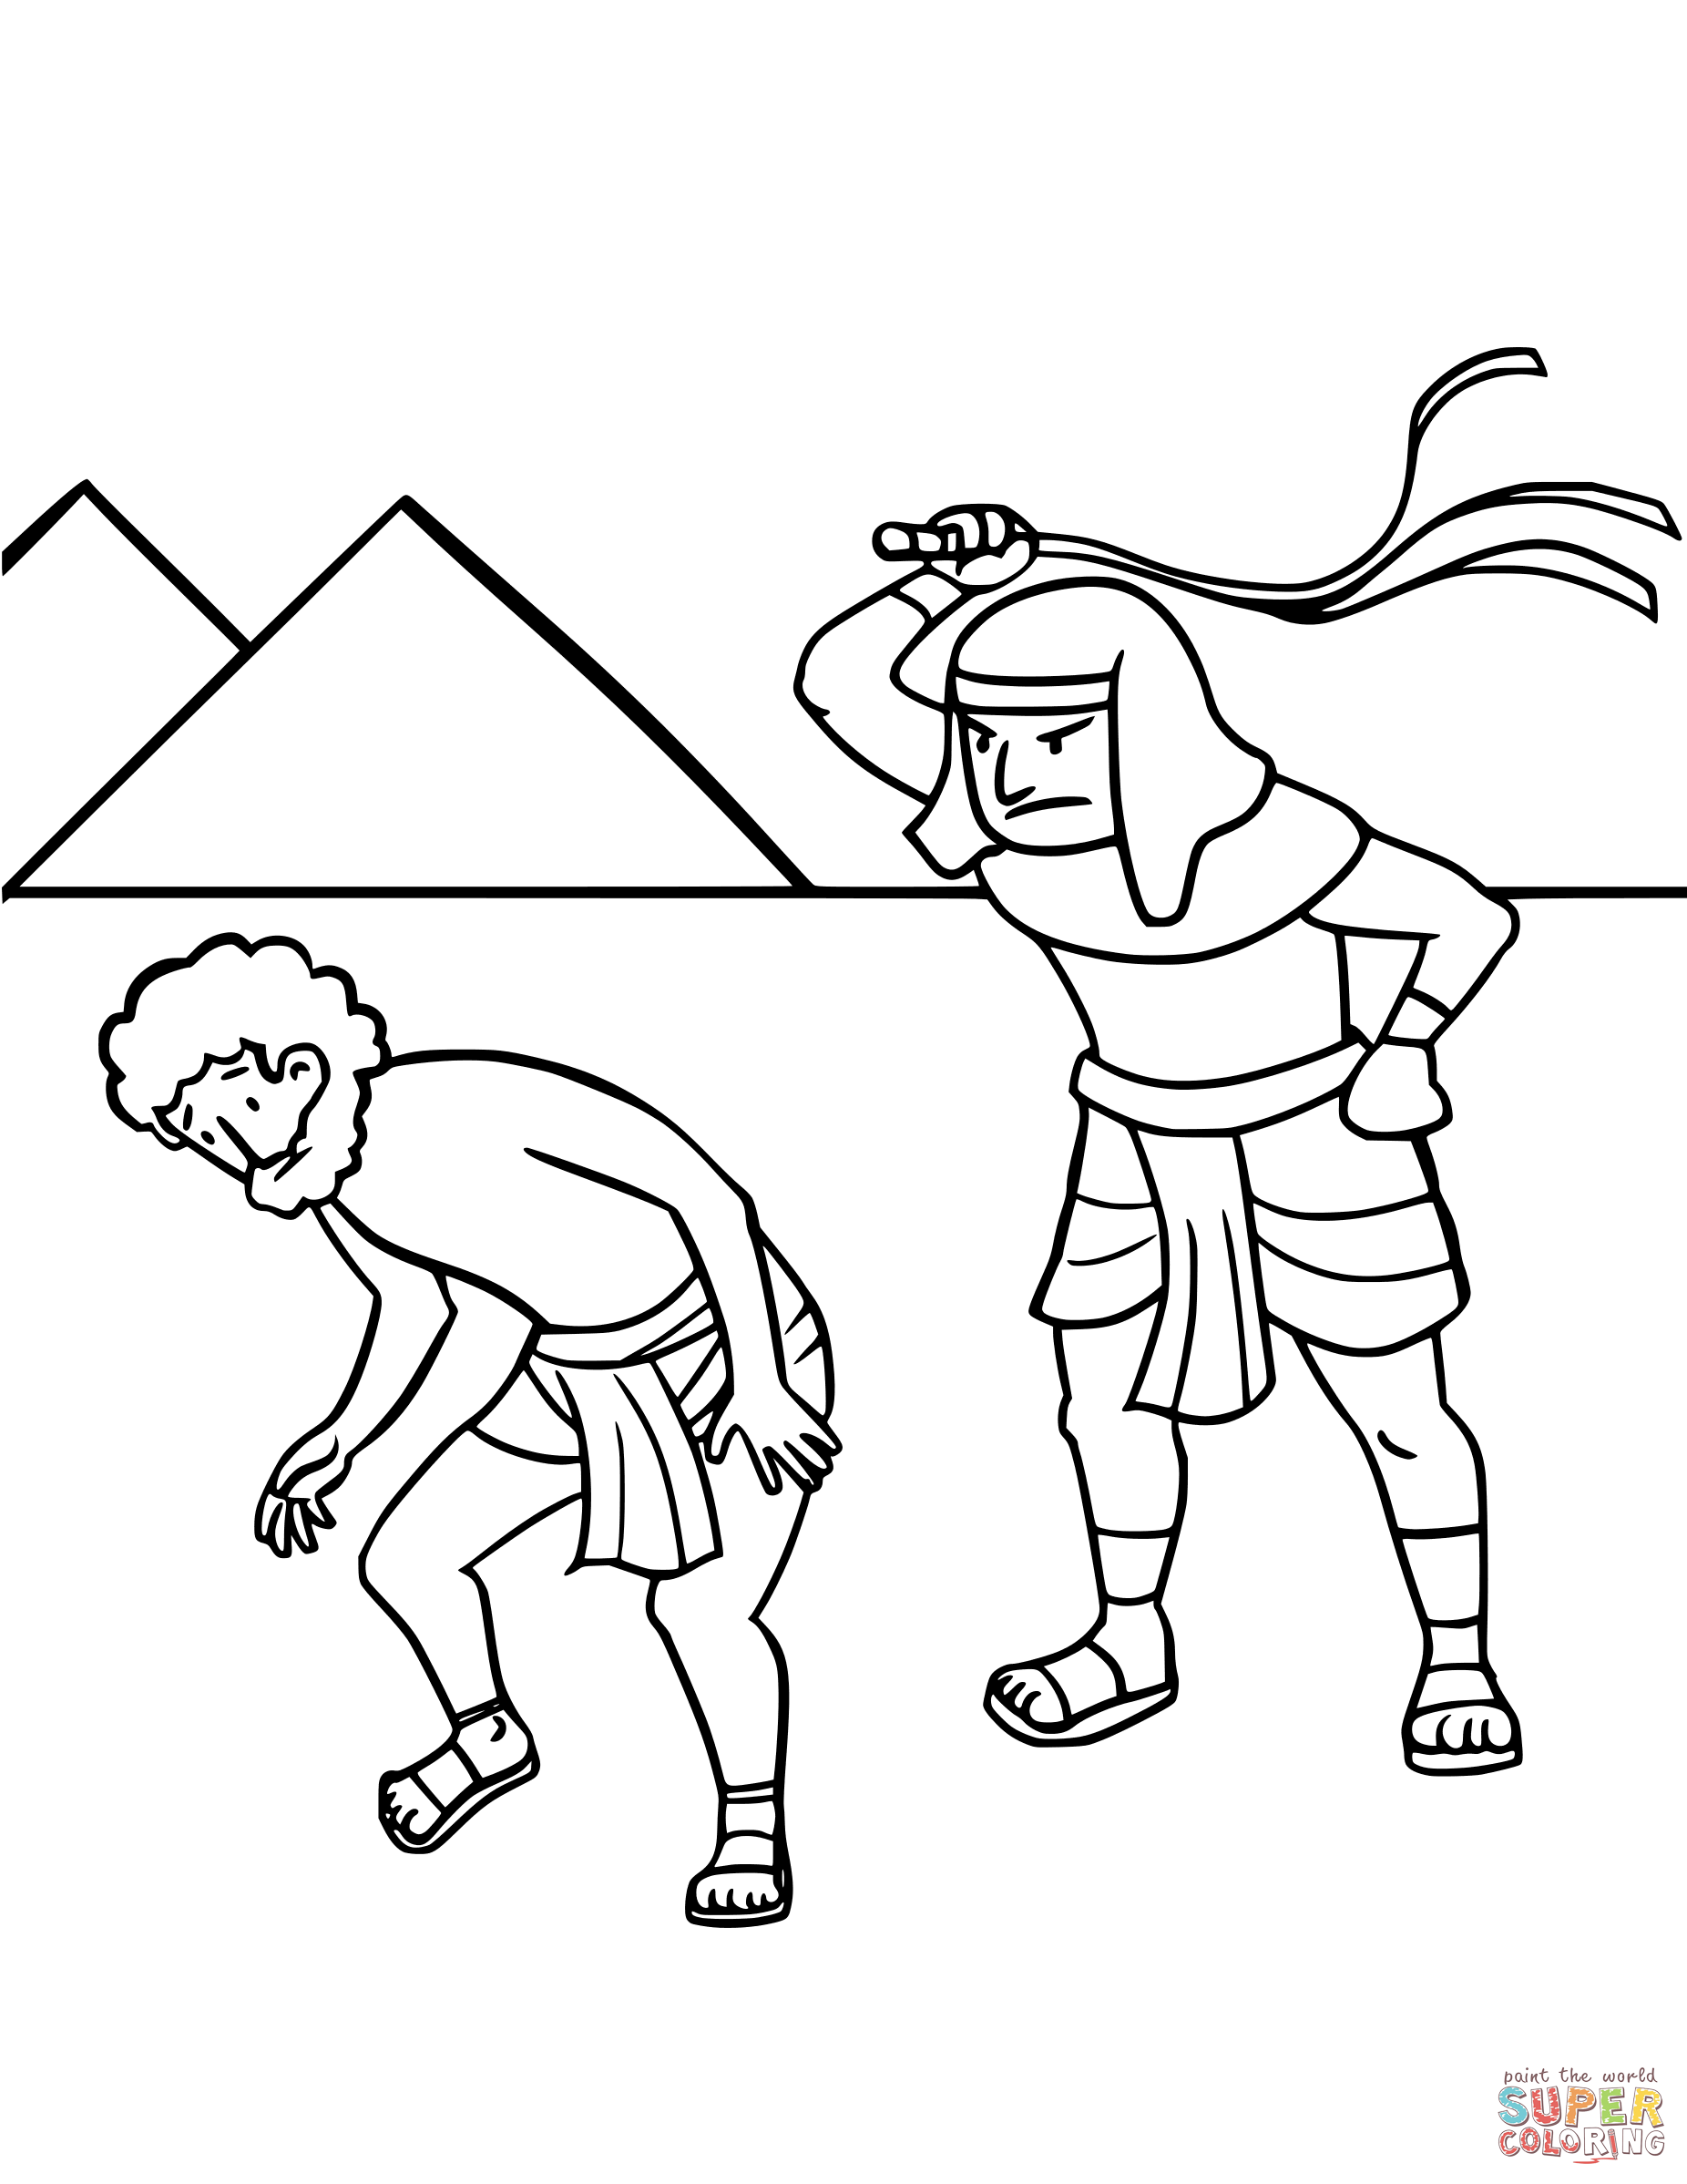 Israel S Enslavement In Egypt Coloring Page